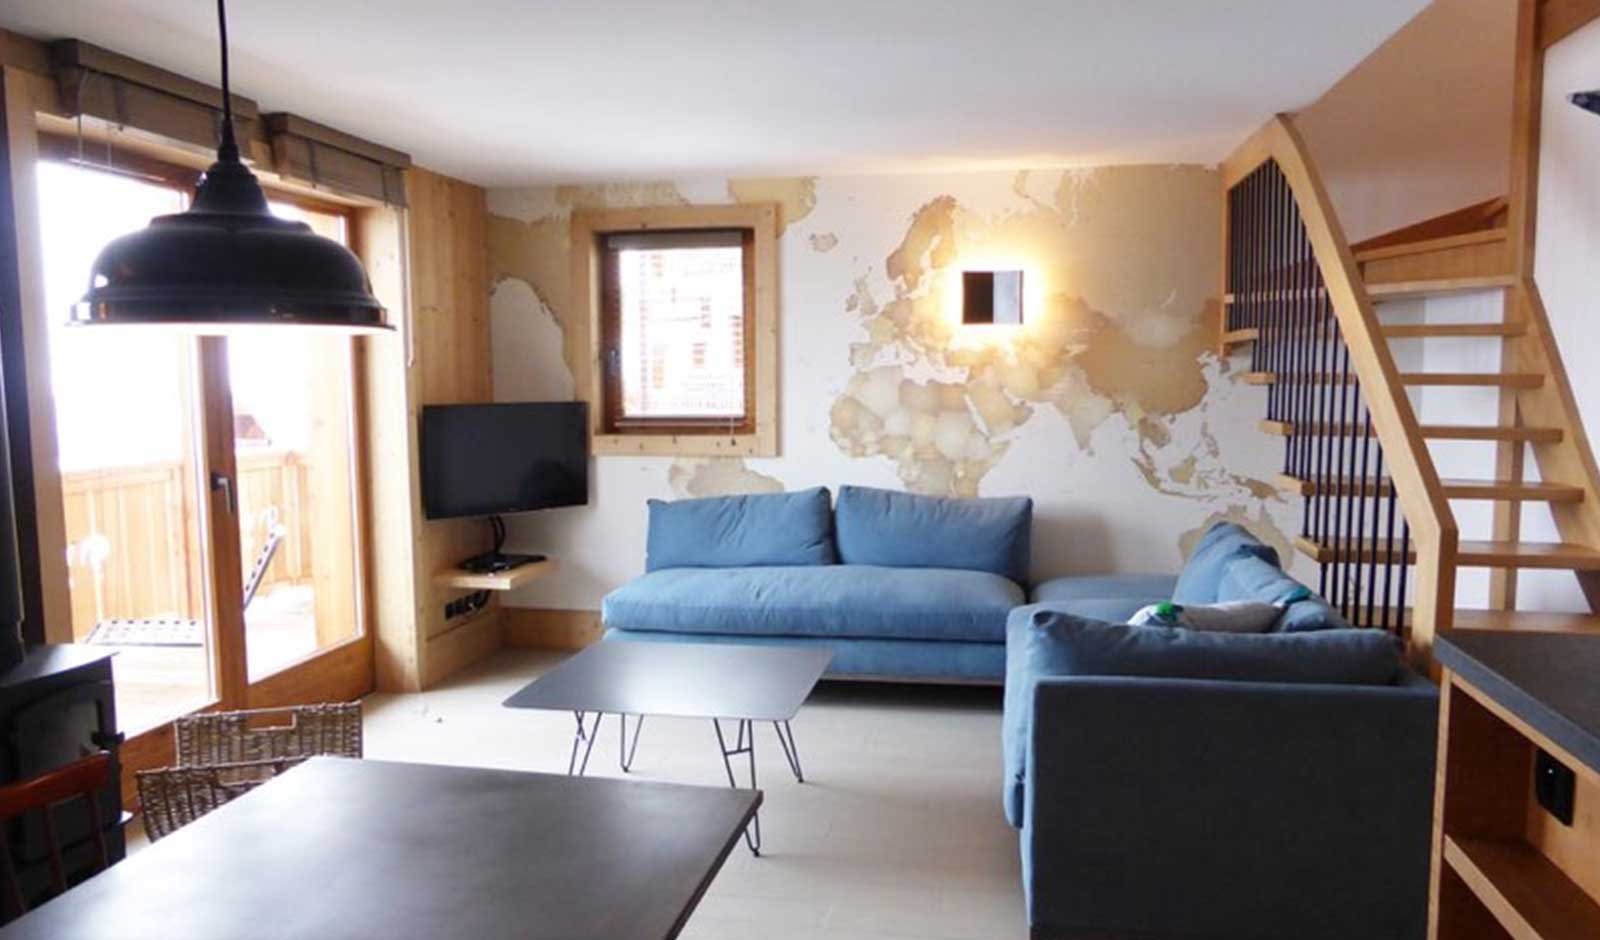 chalet-iselime-6-atelier-crea-and-co-architecte-design-project-manager-meribel-savoie